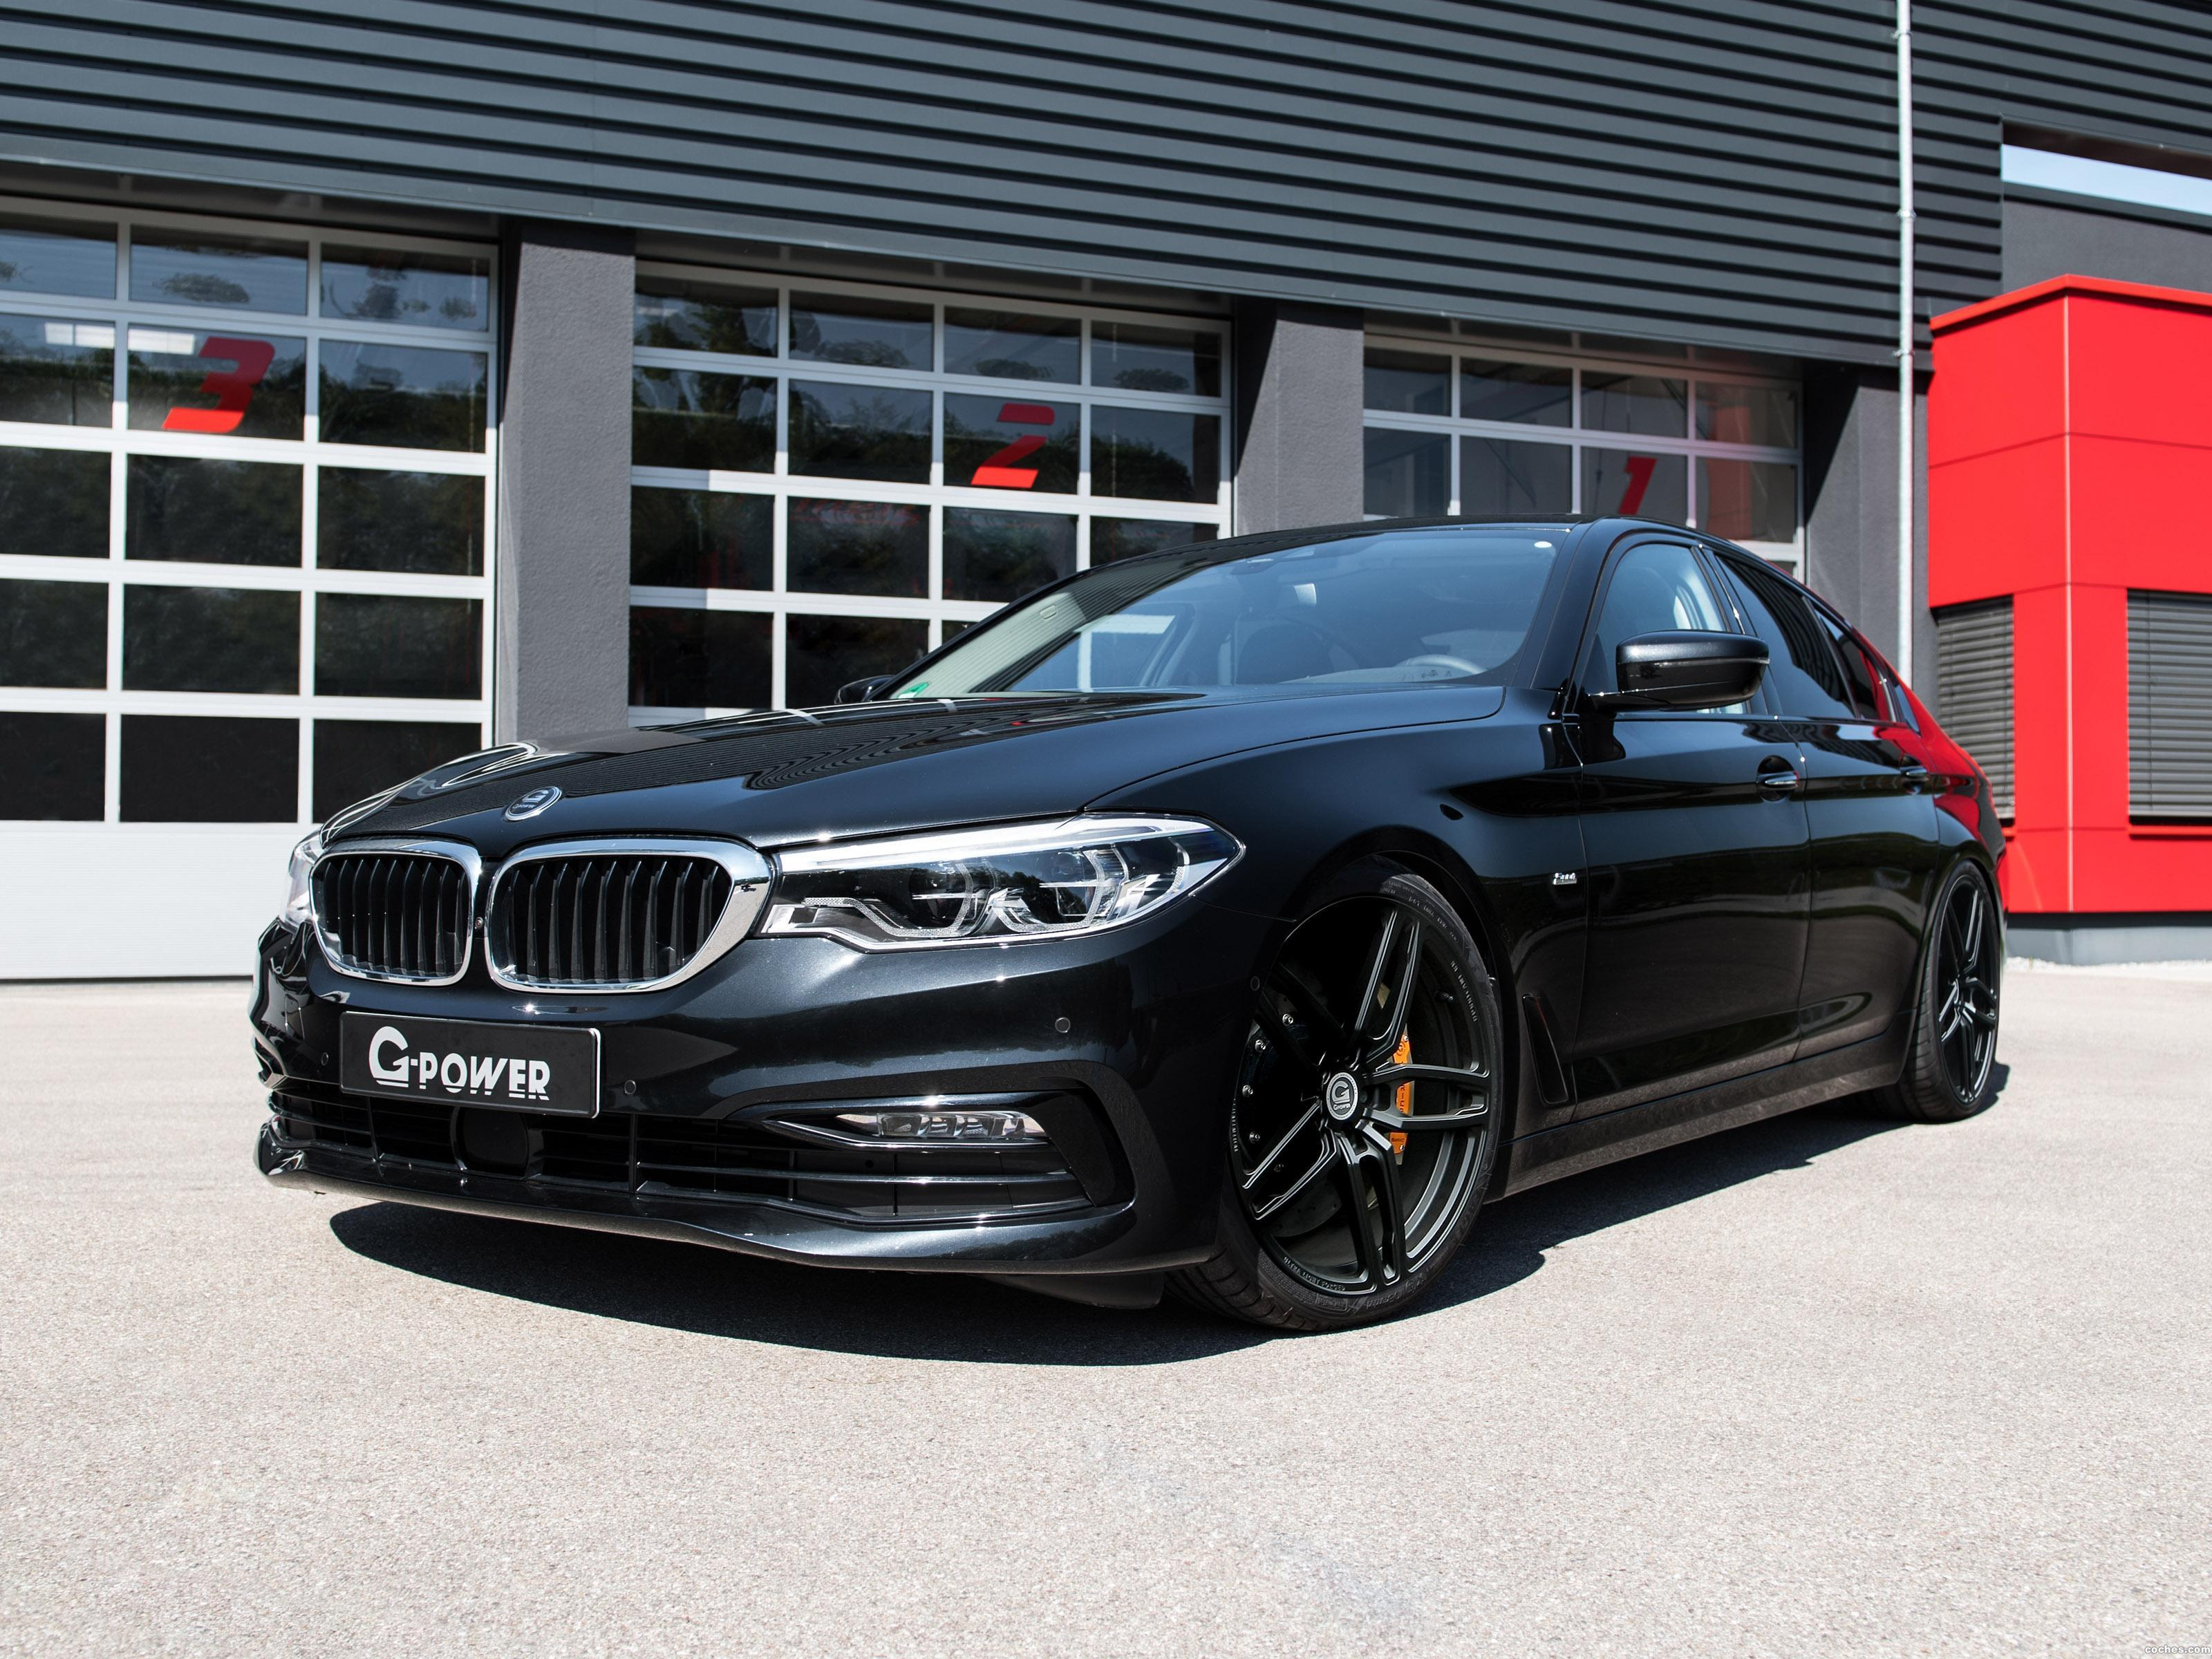 Foto 0 de BMW Serie 5 540i G-Power (G30) 2017